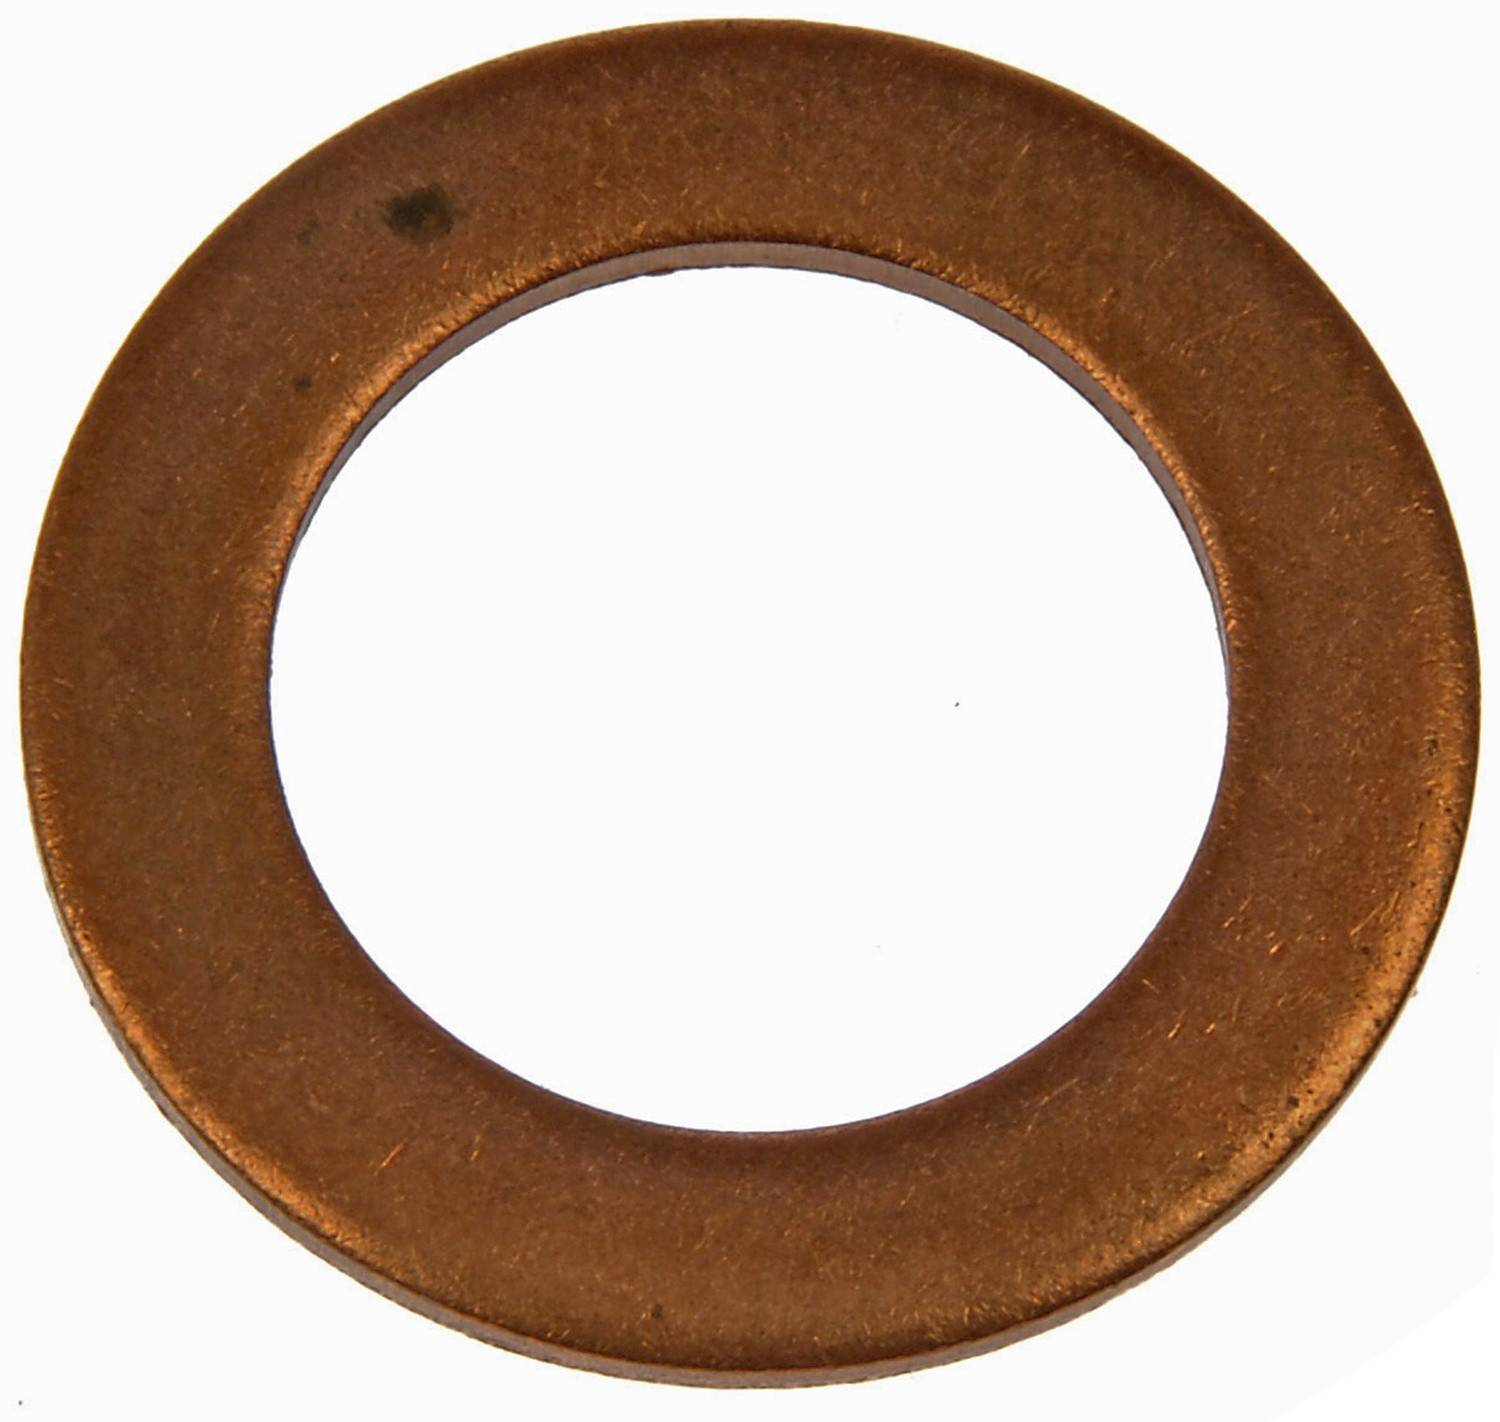 DORMAN - AUTOGRADE - Engine Oil Drain Plug Gasket - DOC 095-019.1